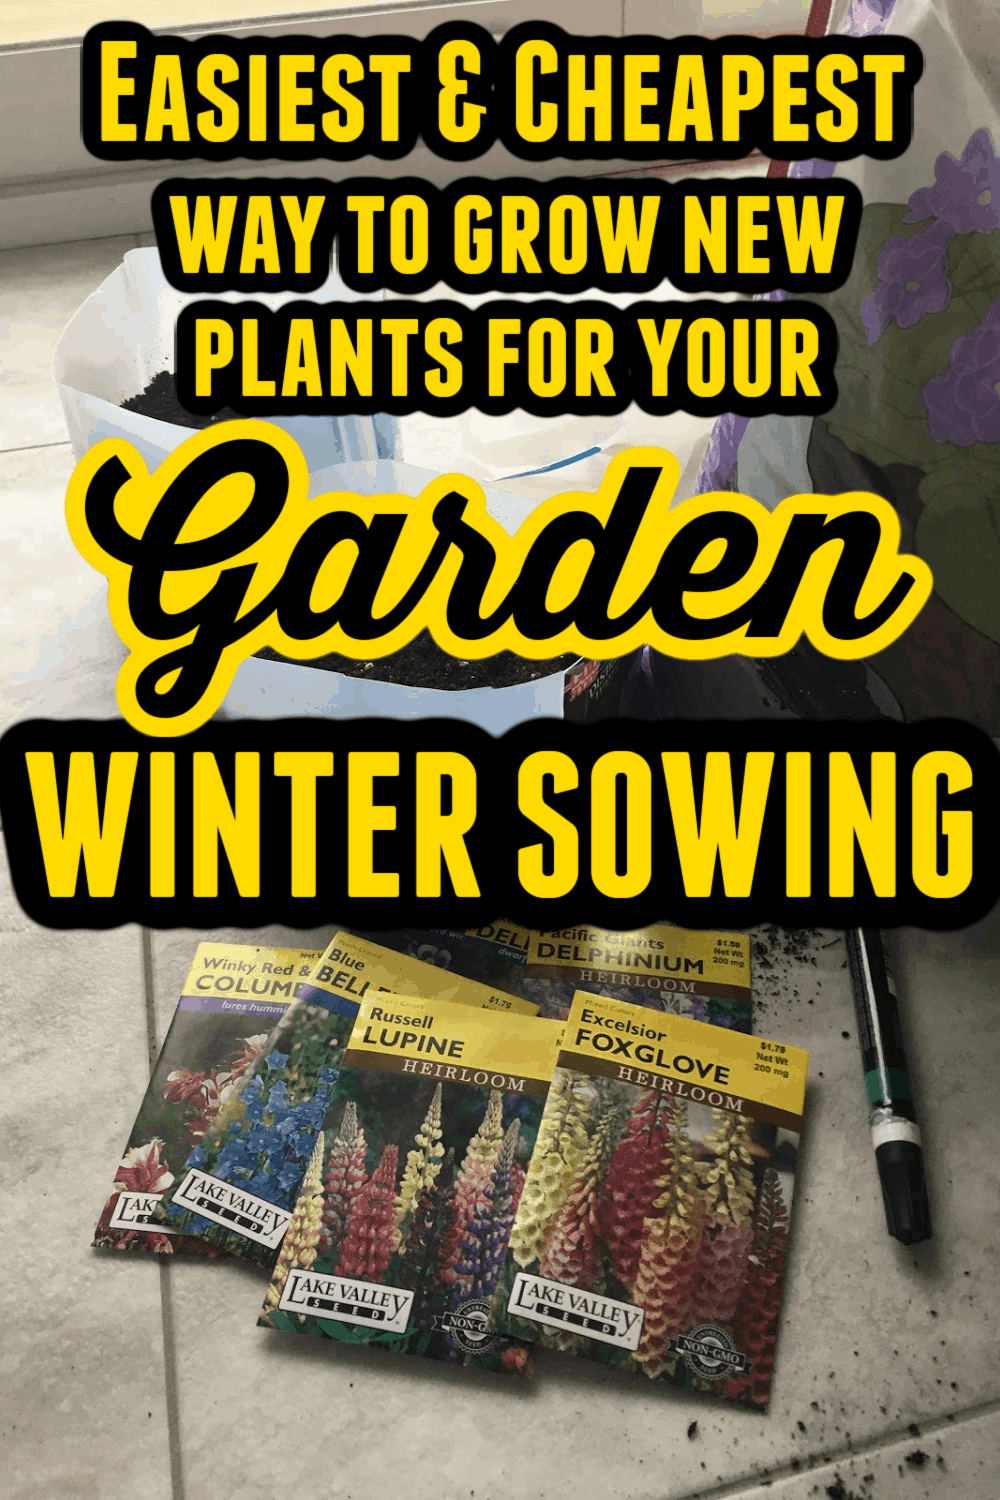 Image of Garden Seeds with Text Overlay - Easiest & Cheapest way to grow new plants for your Garden Winter Sowing